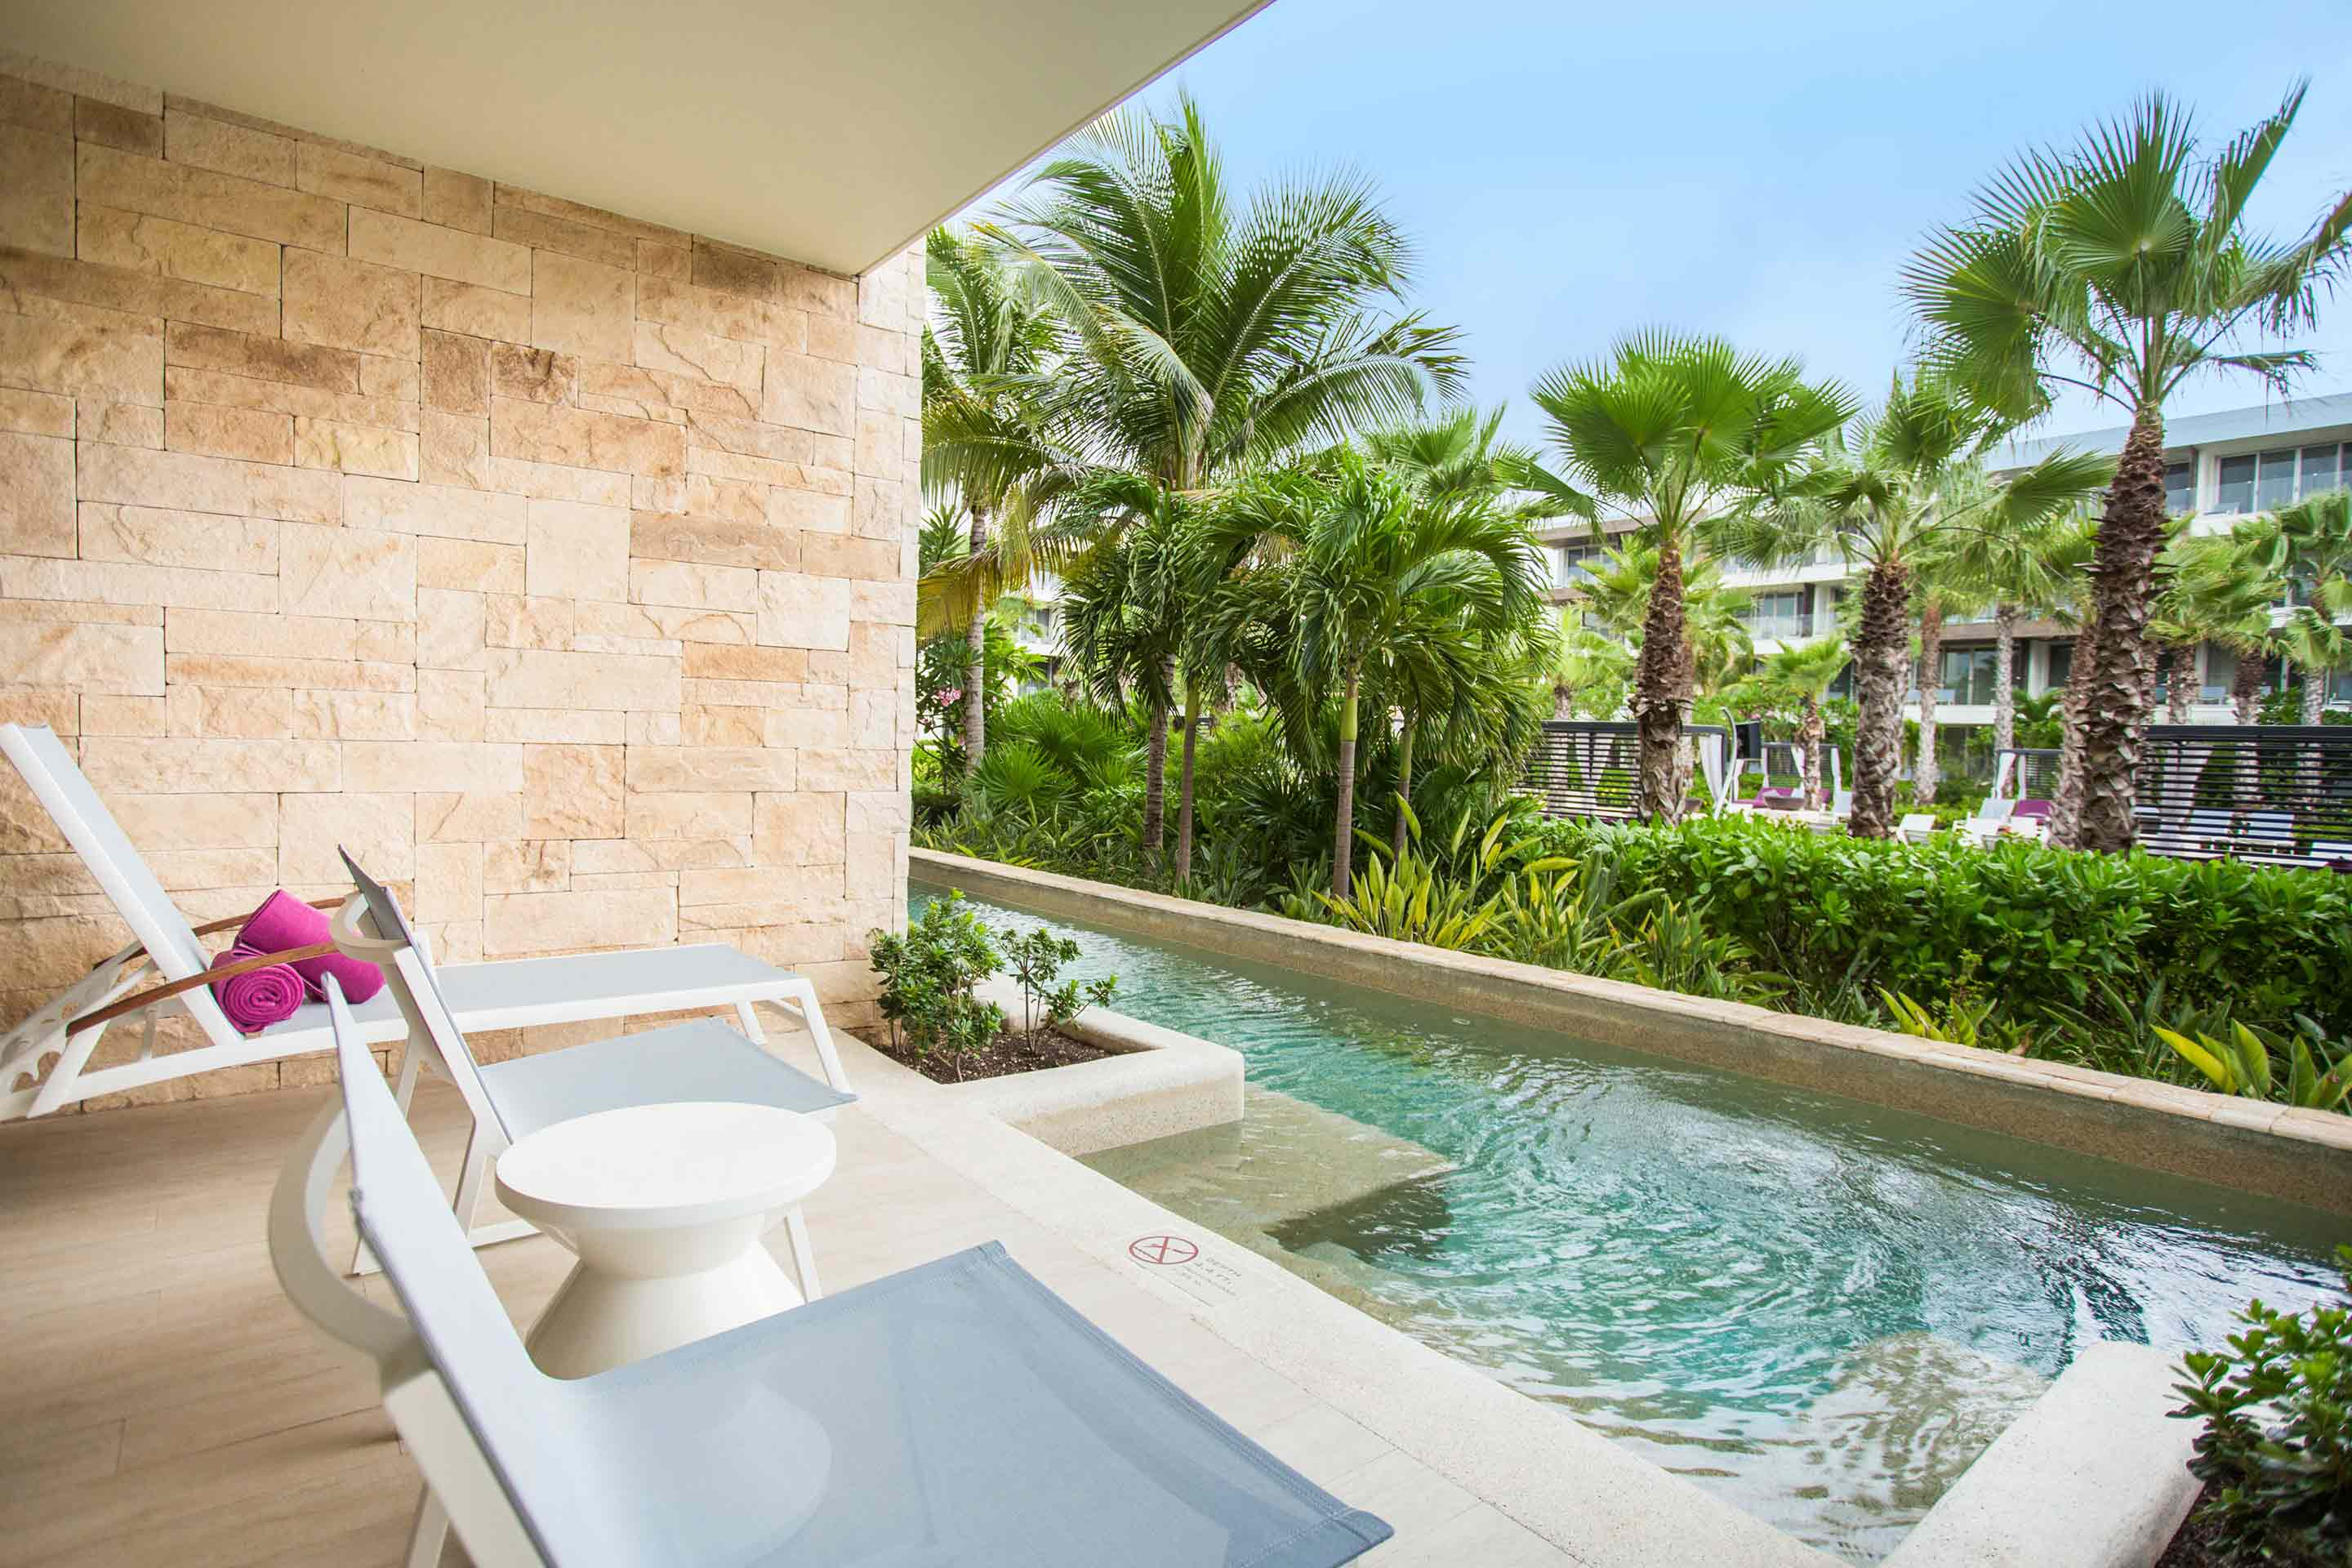 Showing slide 3 of 3 in image gallery showcasing Allure Junior Suite Swim out Tropical View